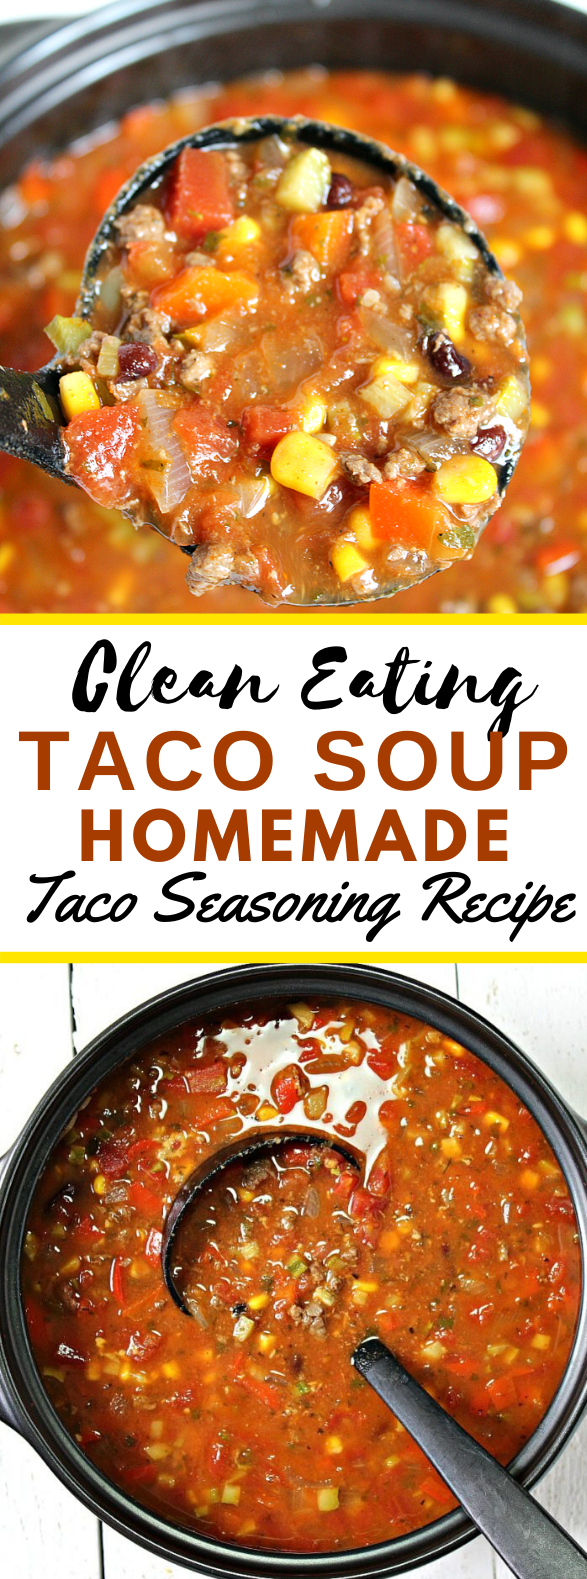 Taco Soup + Homemade Taco Seasoning Recipe #cleaneating #healthy